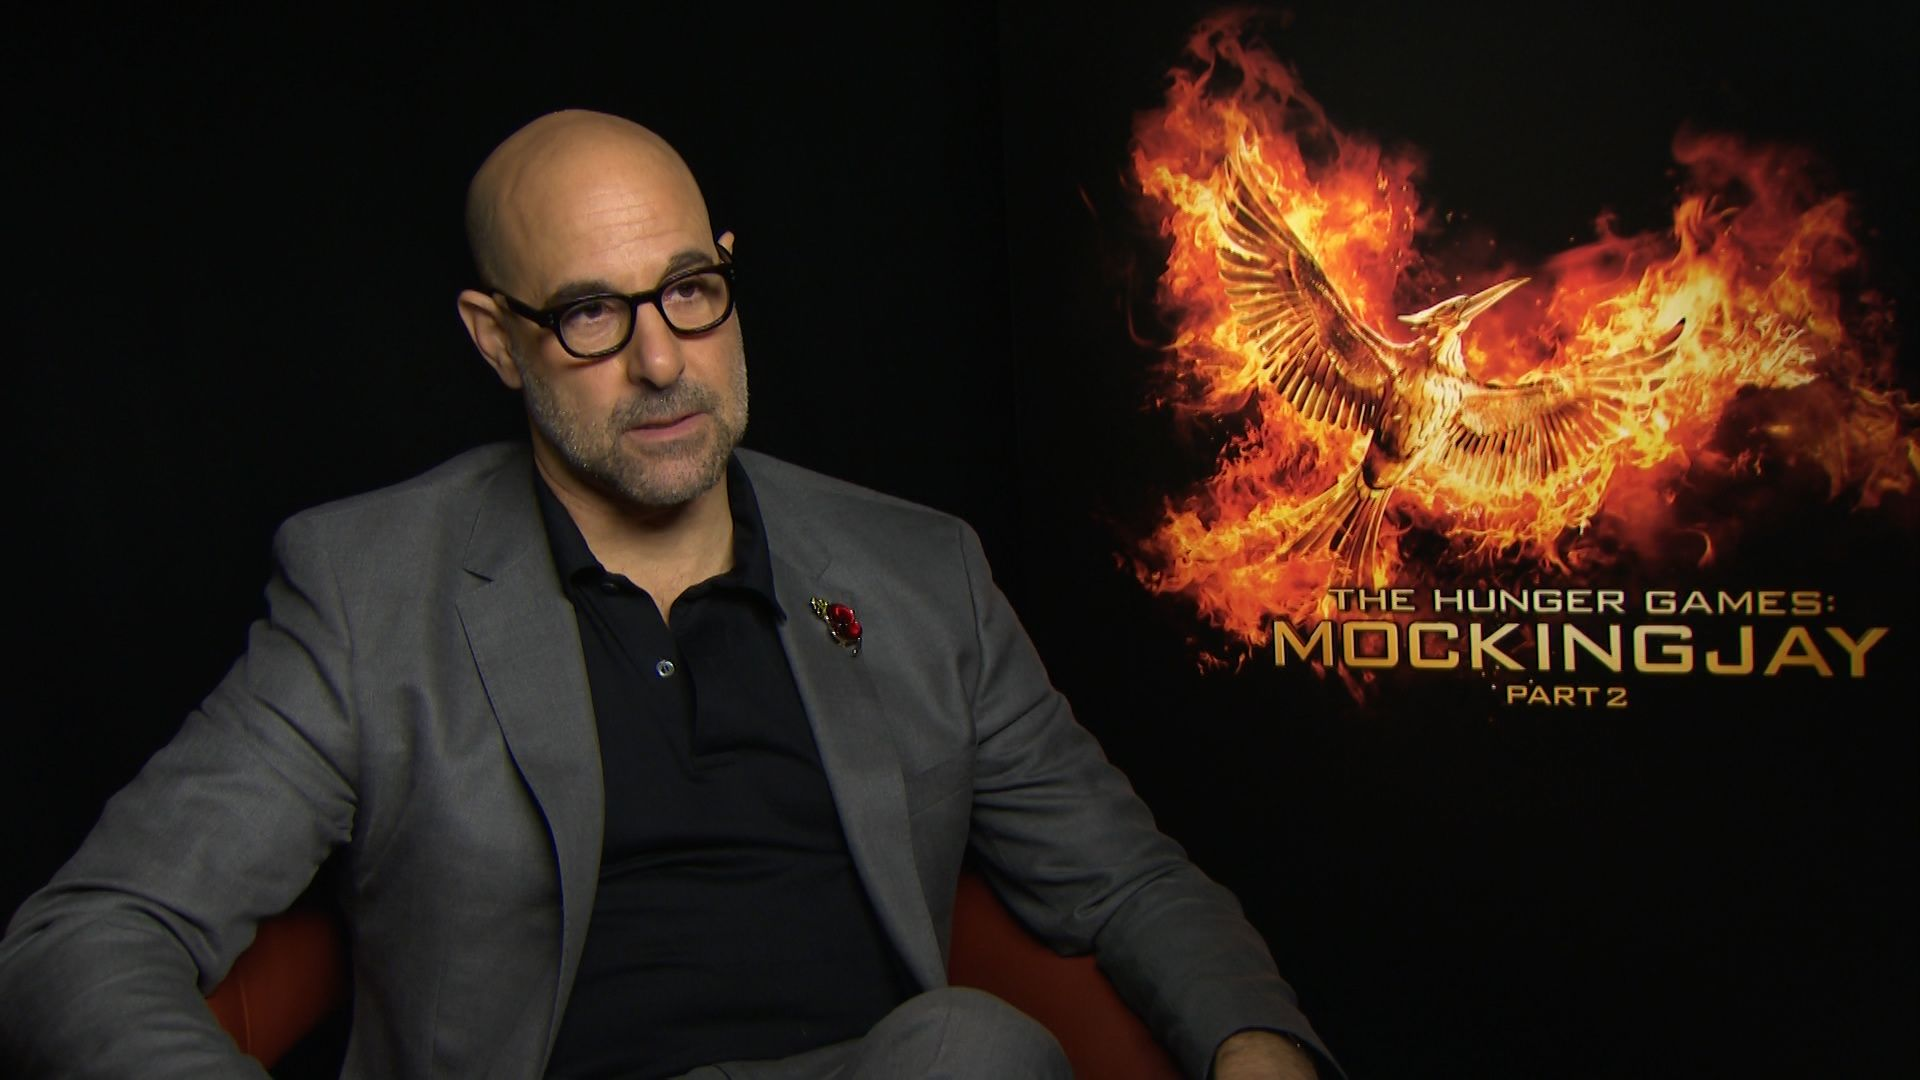 The Hunger Games Stanley Tucci - HeyUGuys